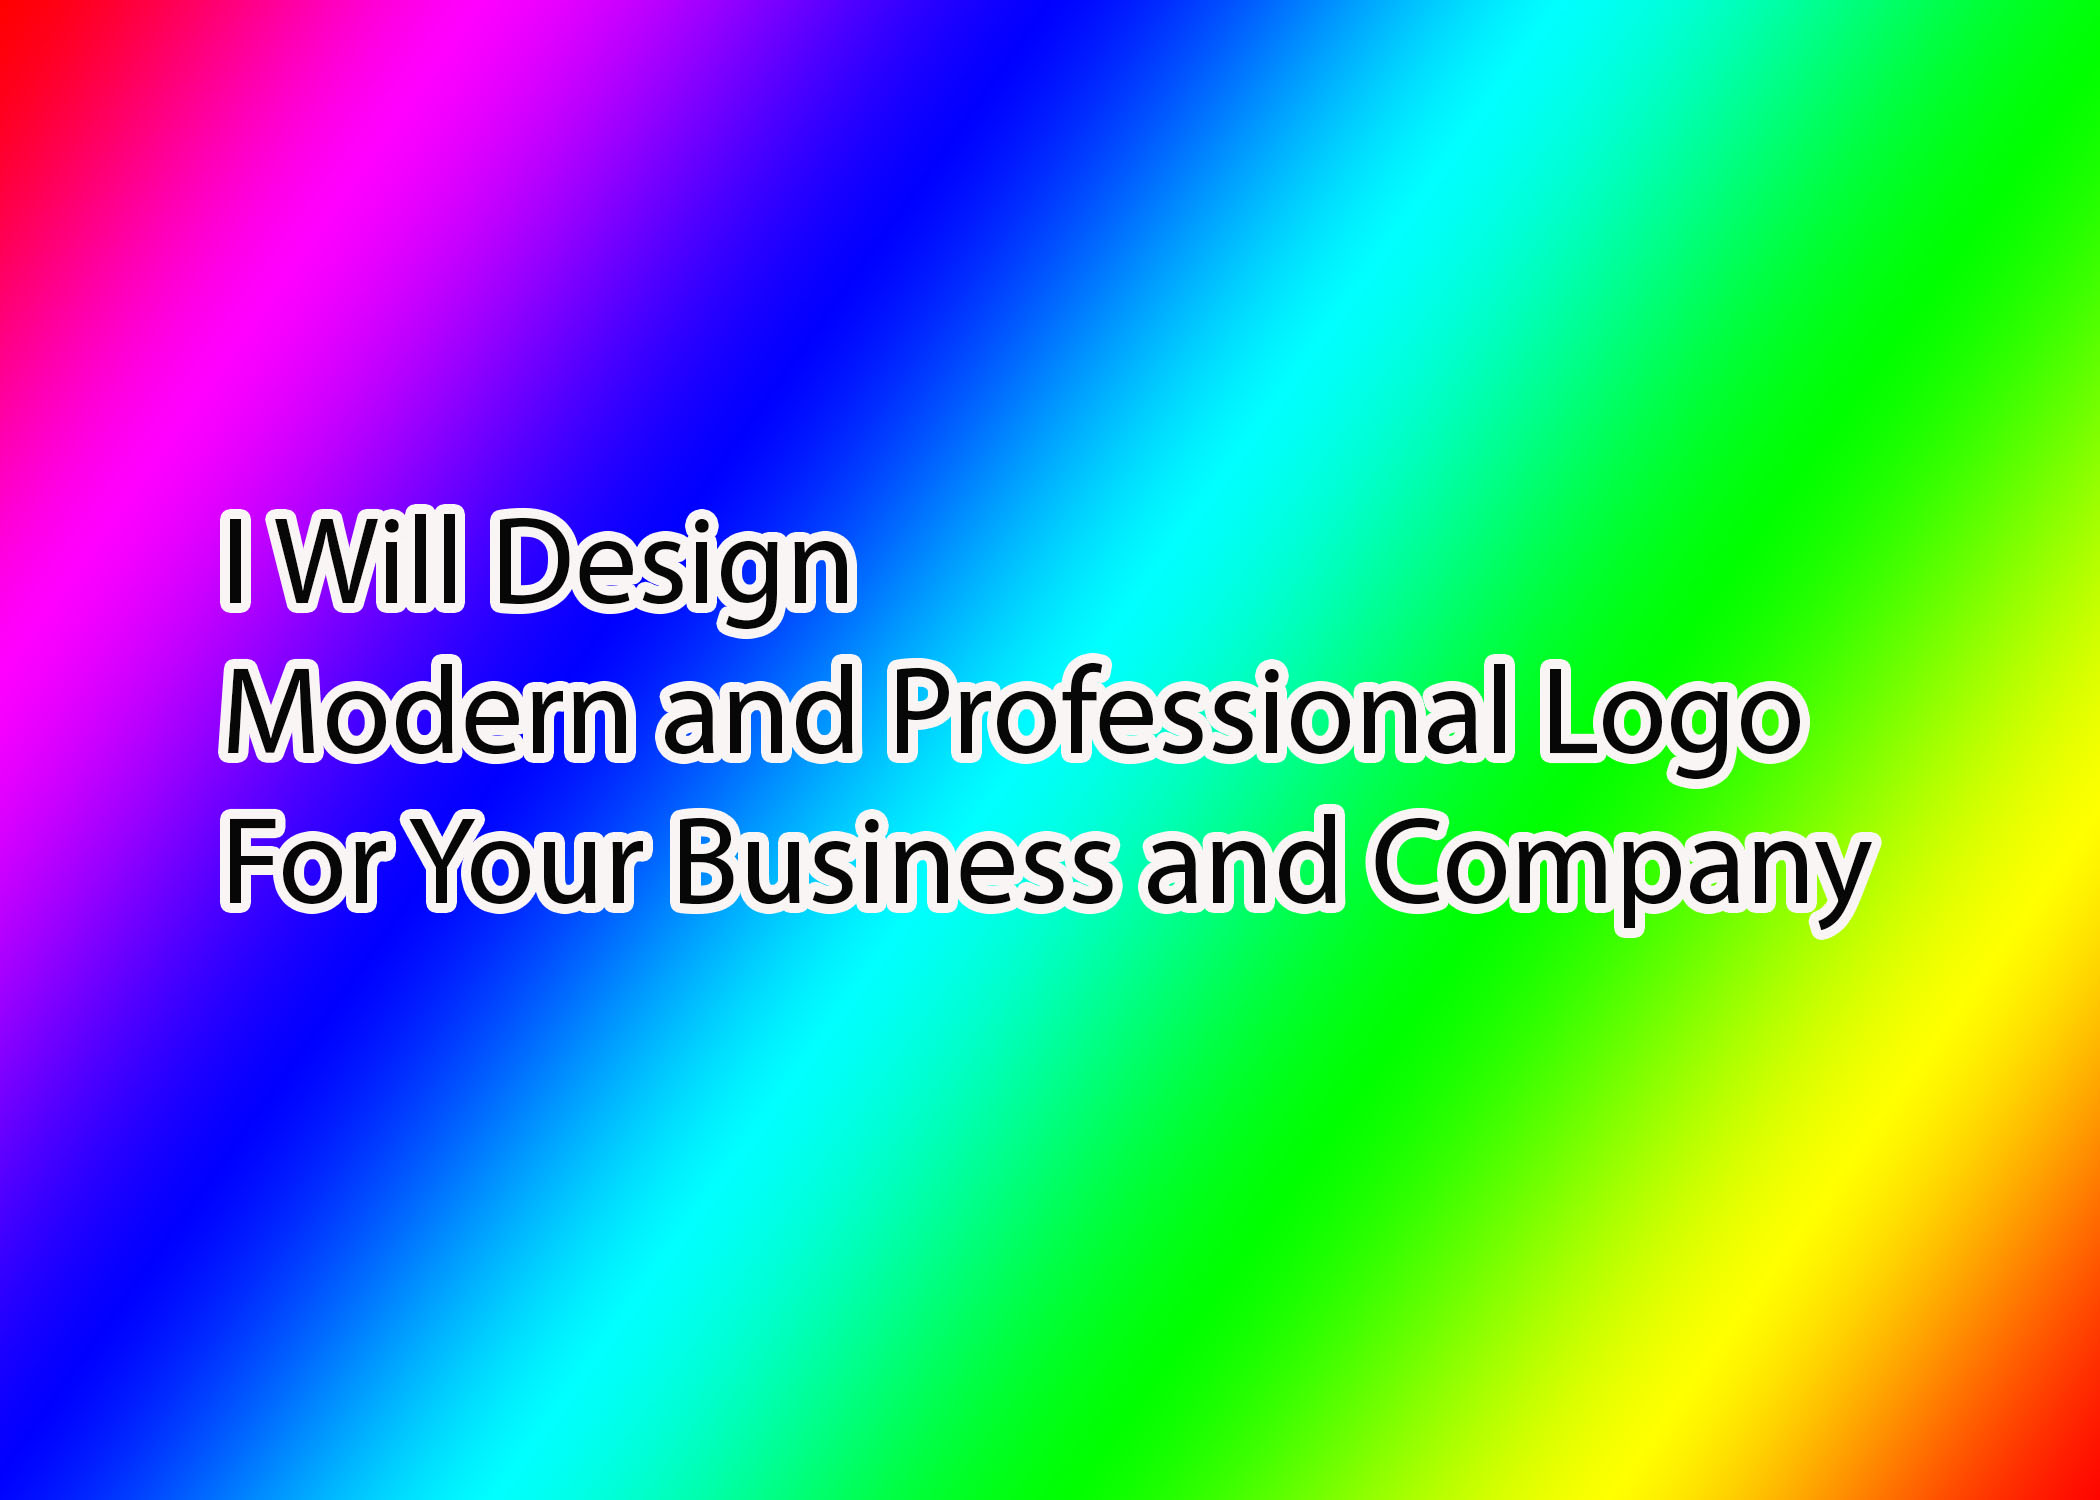 I Will Design Modern and Professional Logo For Your Business and Company